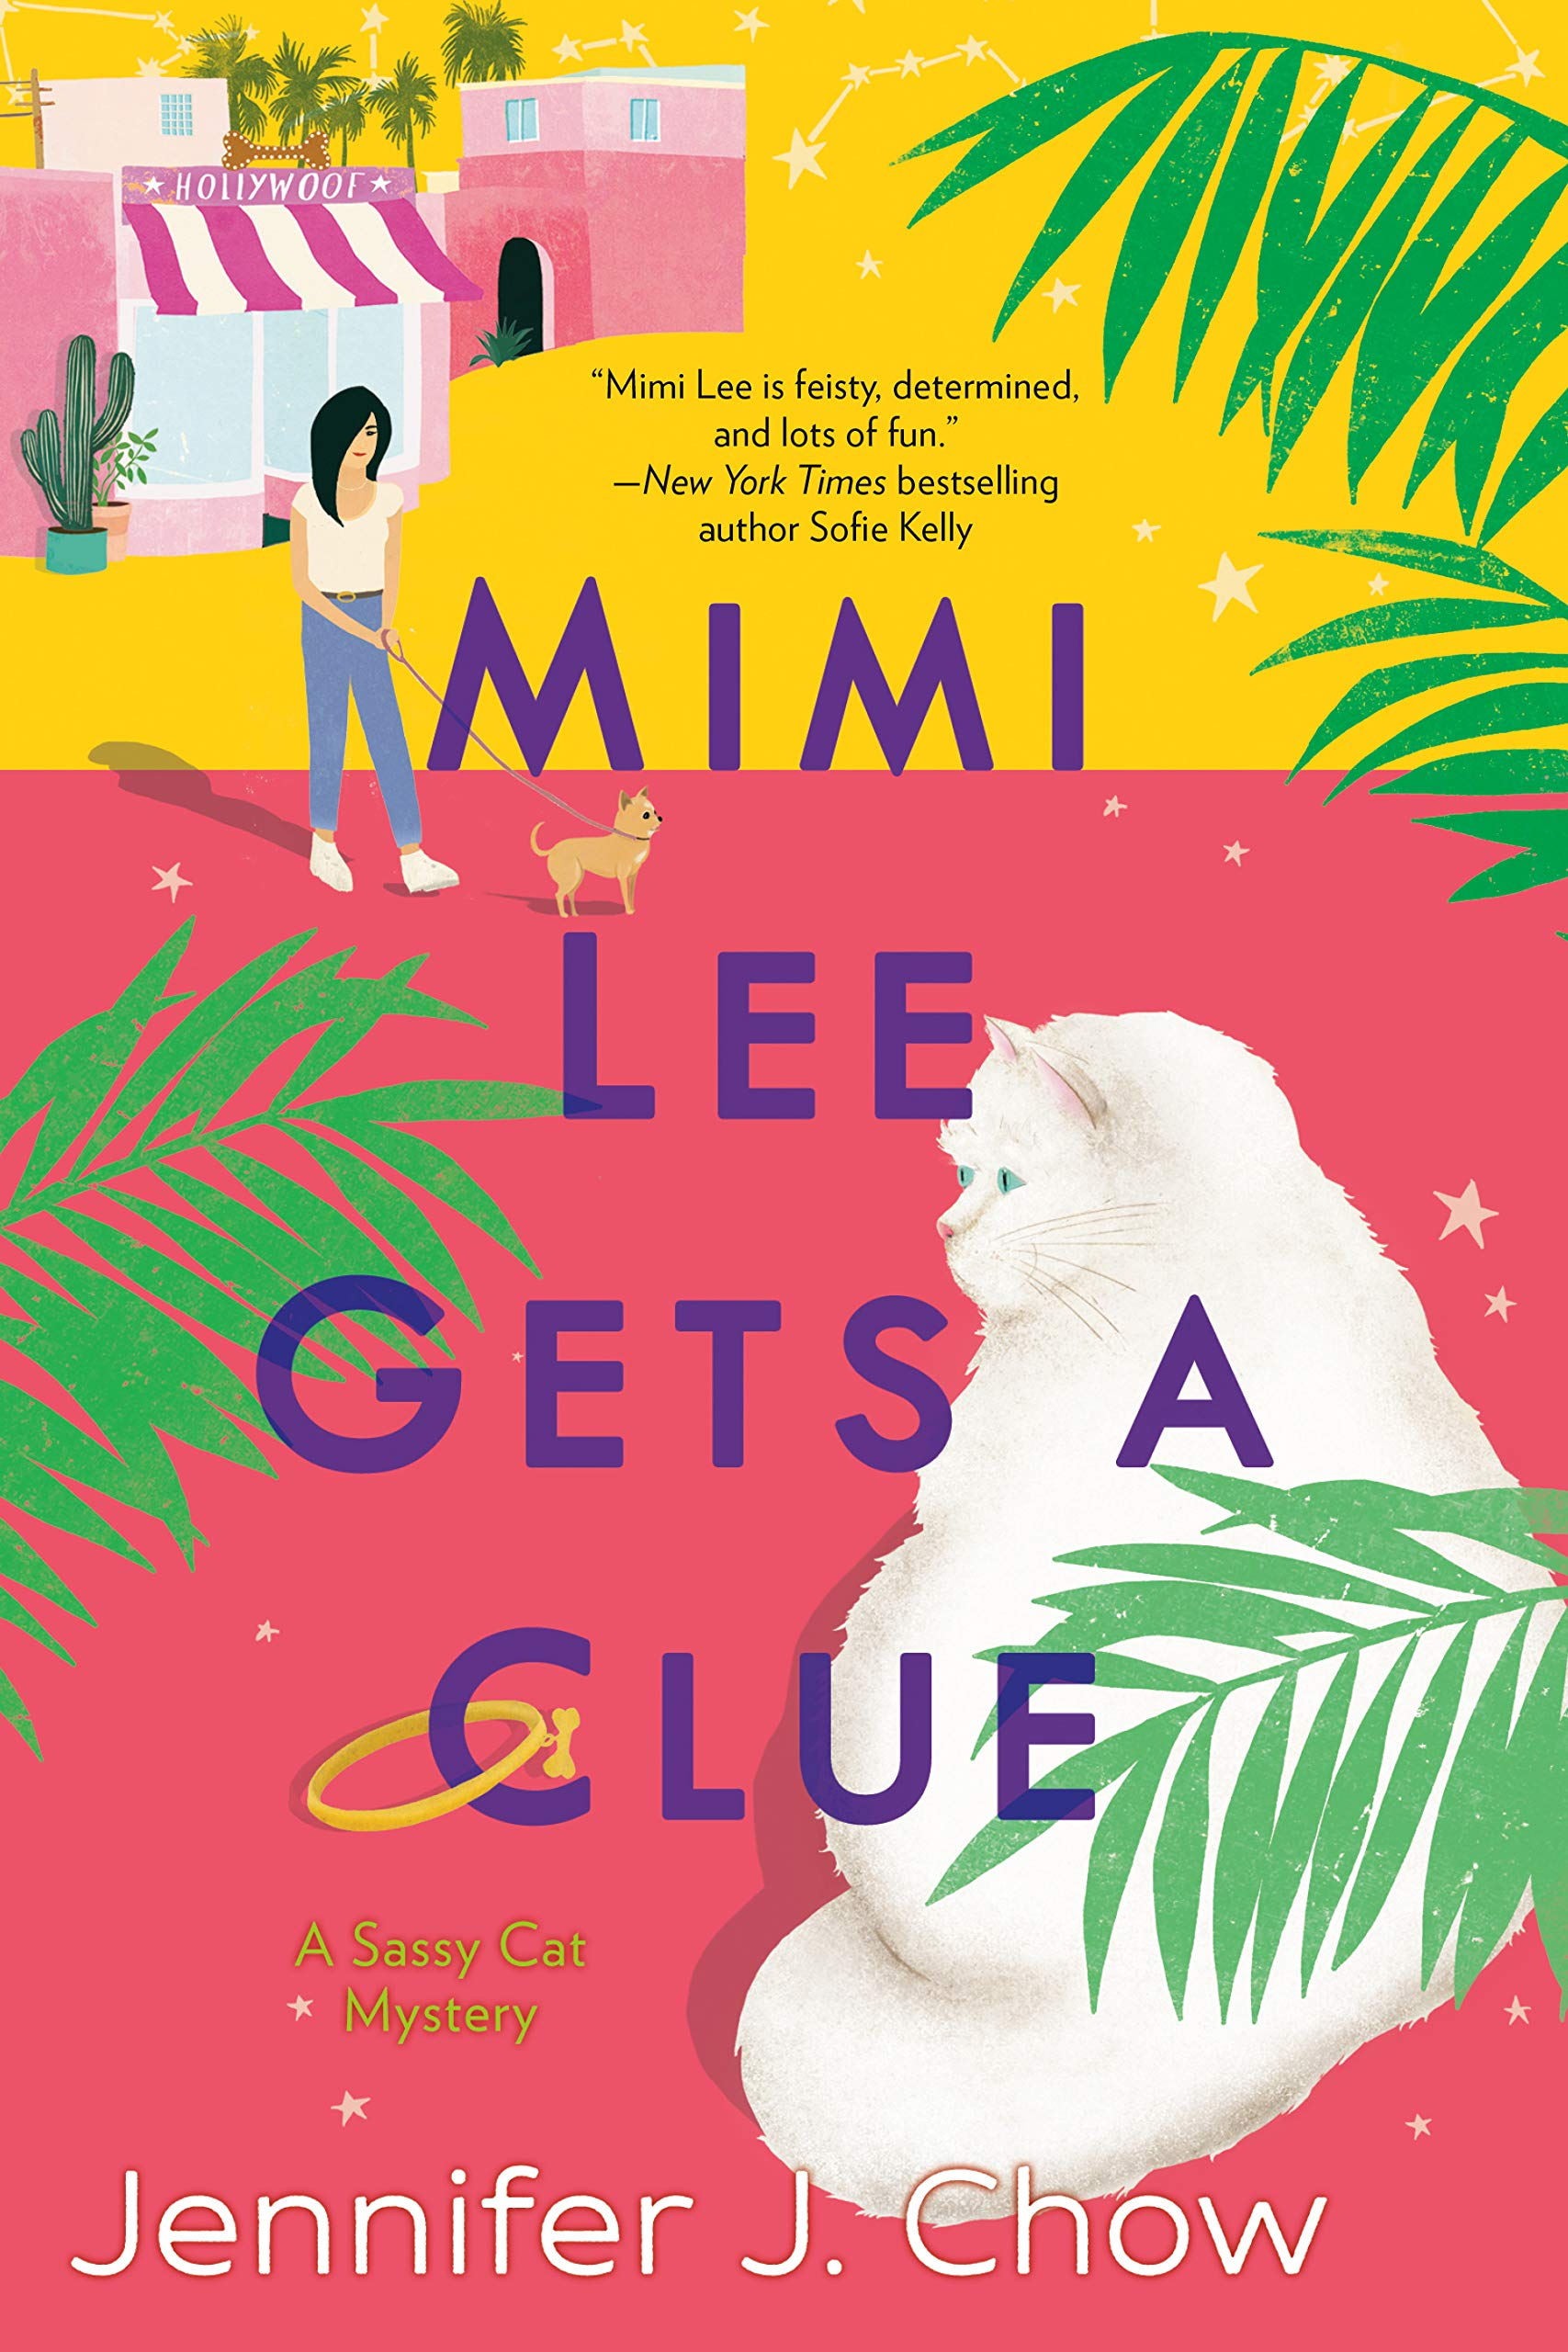 Image result for Mimi Lee Gets a Clue